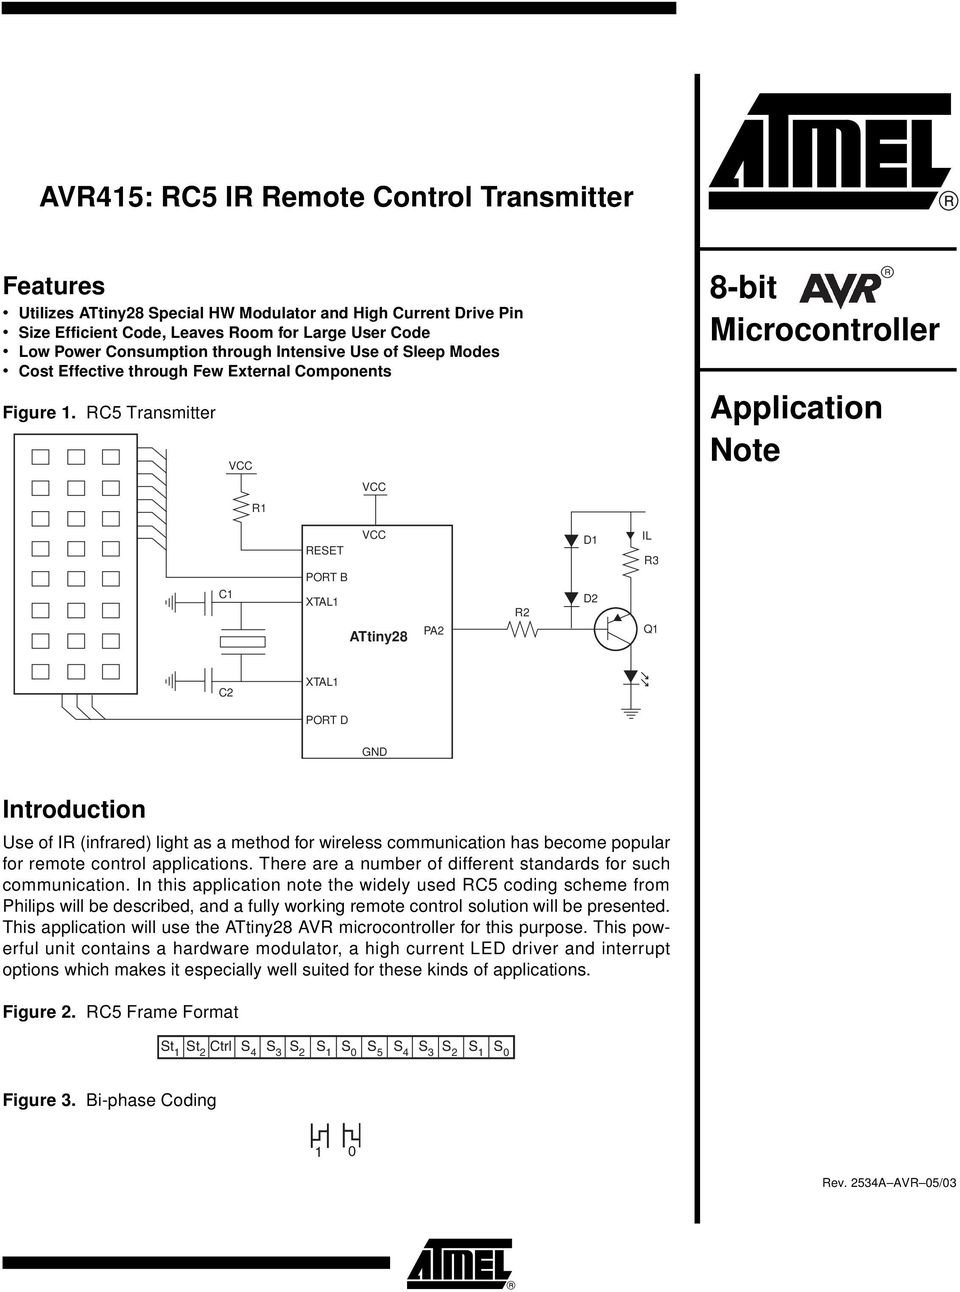 RC5 Transmitter R1 8-bit Microcontroller Application te C1 RESET PORT B XTAL1 ATtiny28 PA2 R2 D1 D2 IL R3 Q1 C2 XTAL1 PORT D GND Introduction Use of IR (infrared) light as a method for wireless